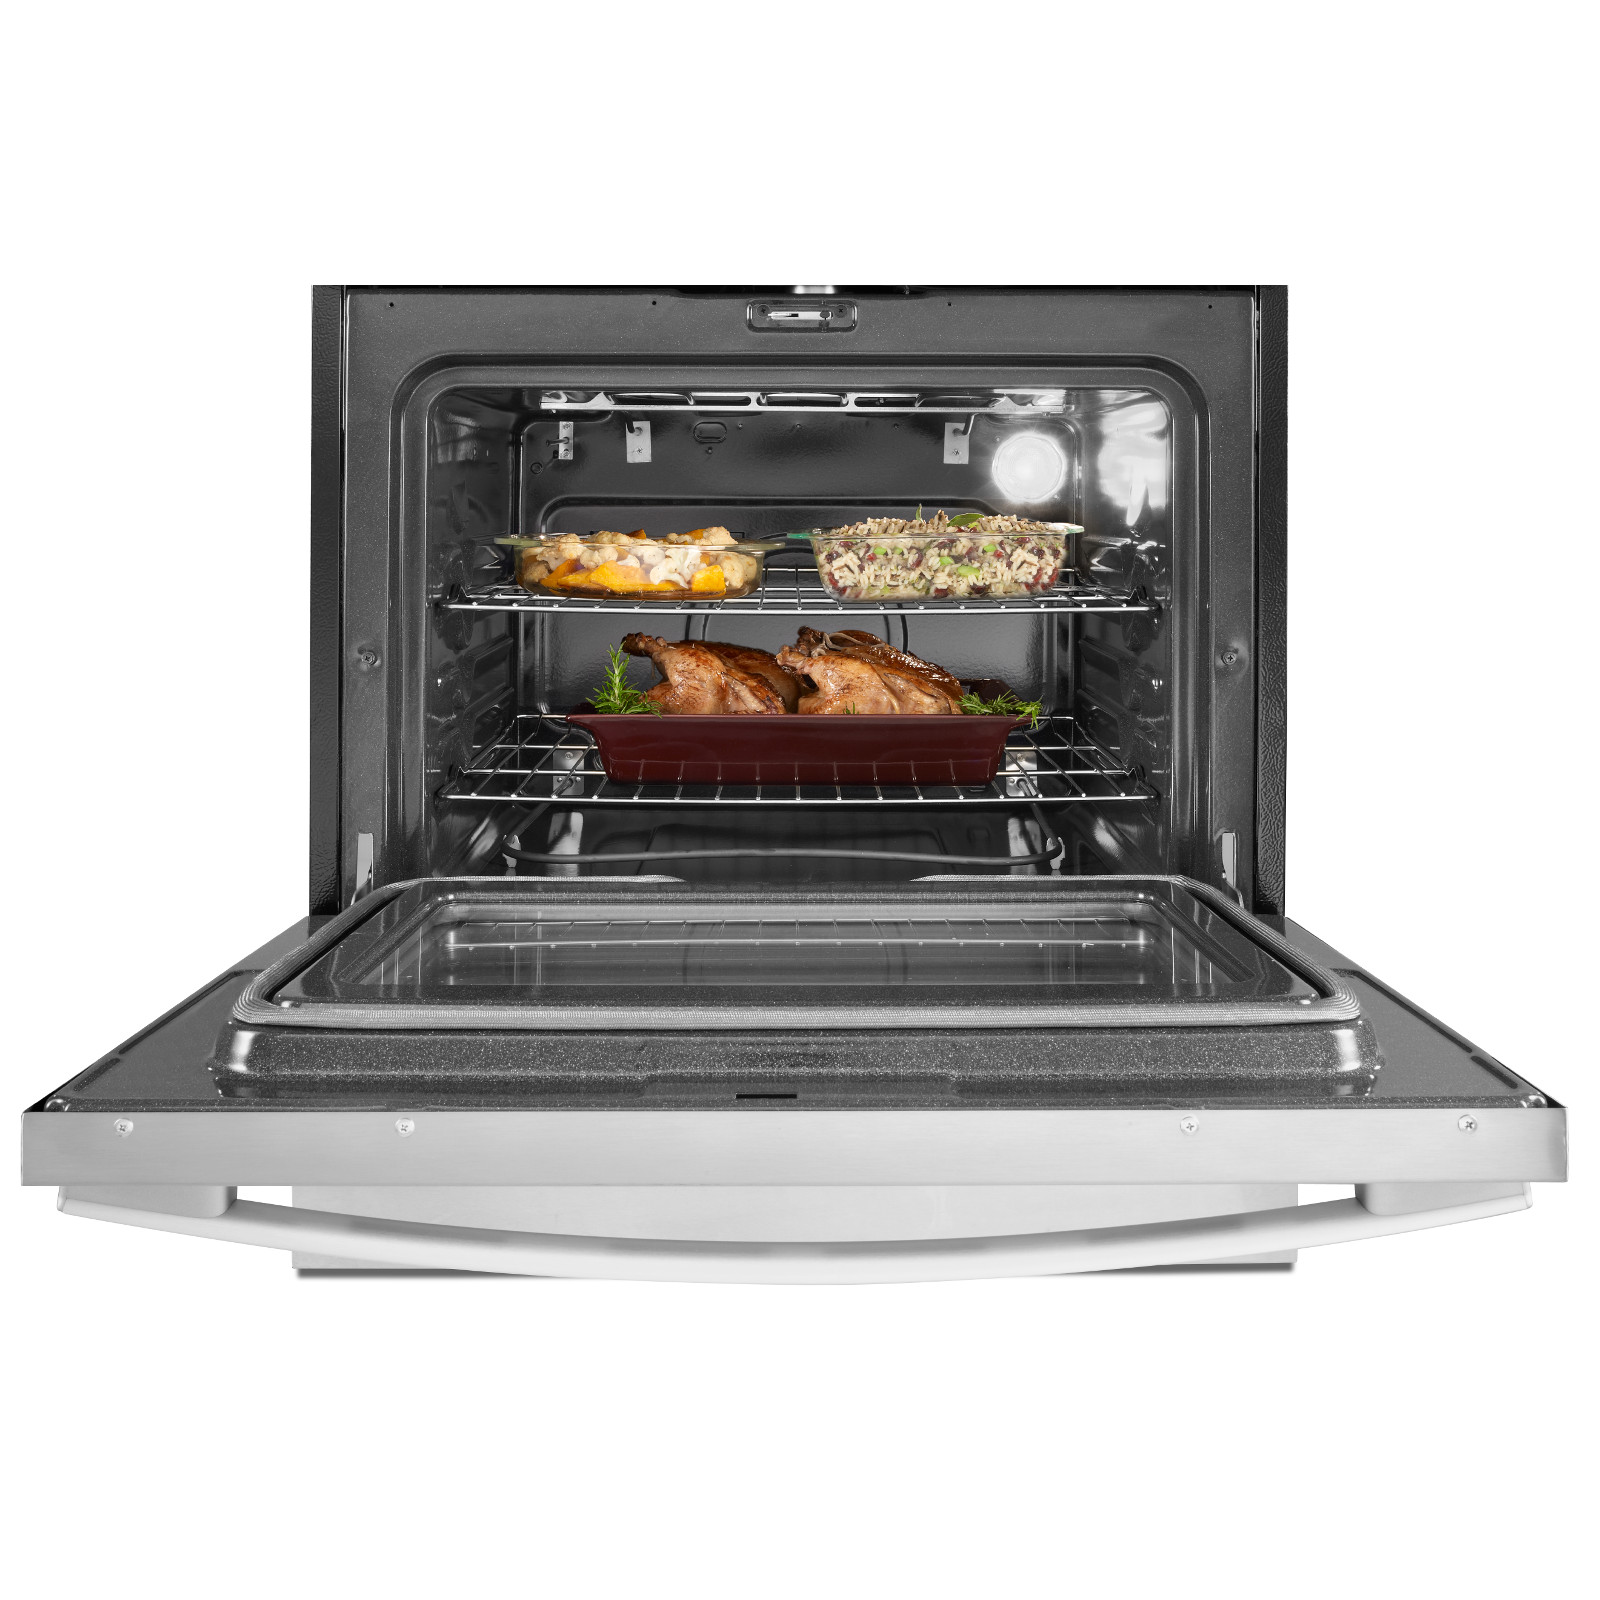 Whirlpool 4.5 cu. ft. Drop-In Electric Range - Stainless Steel